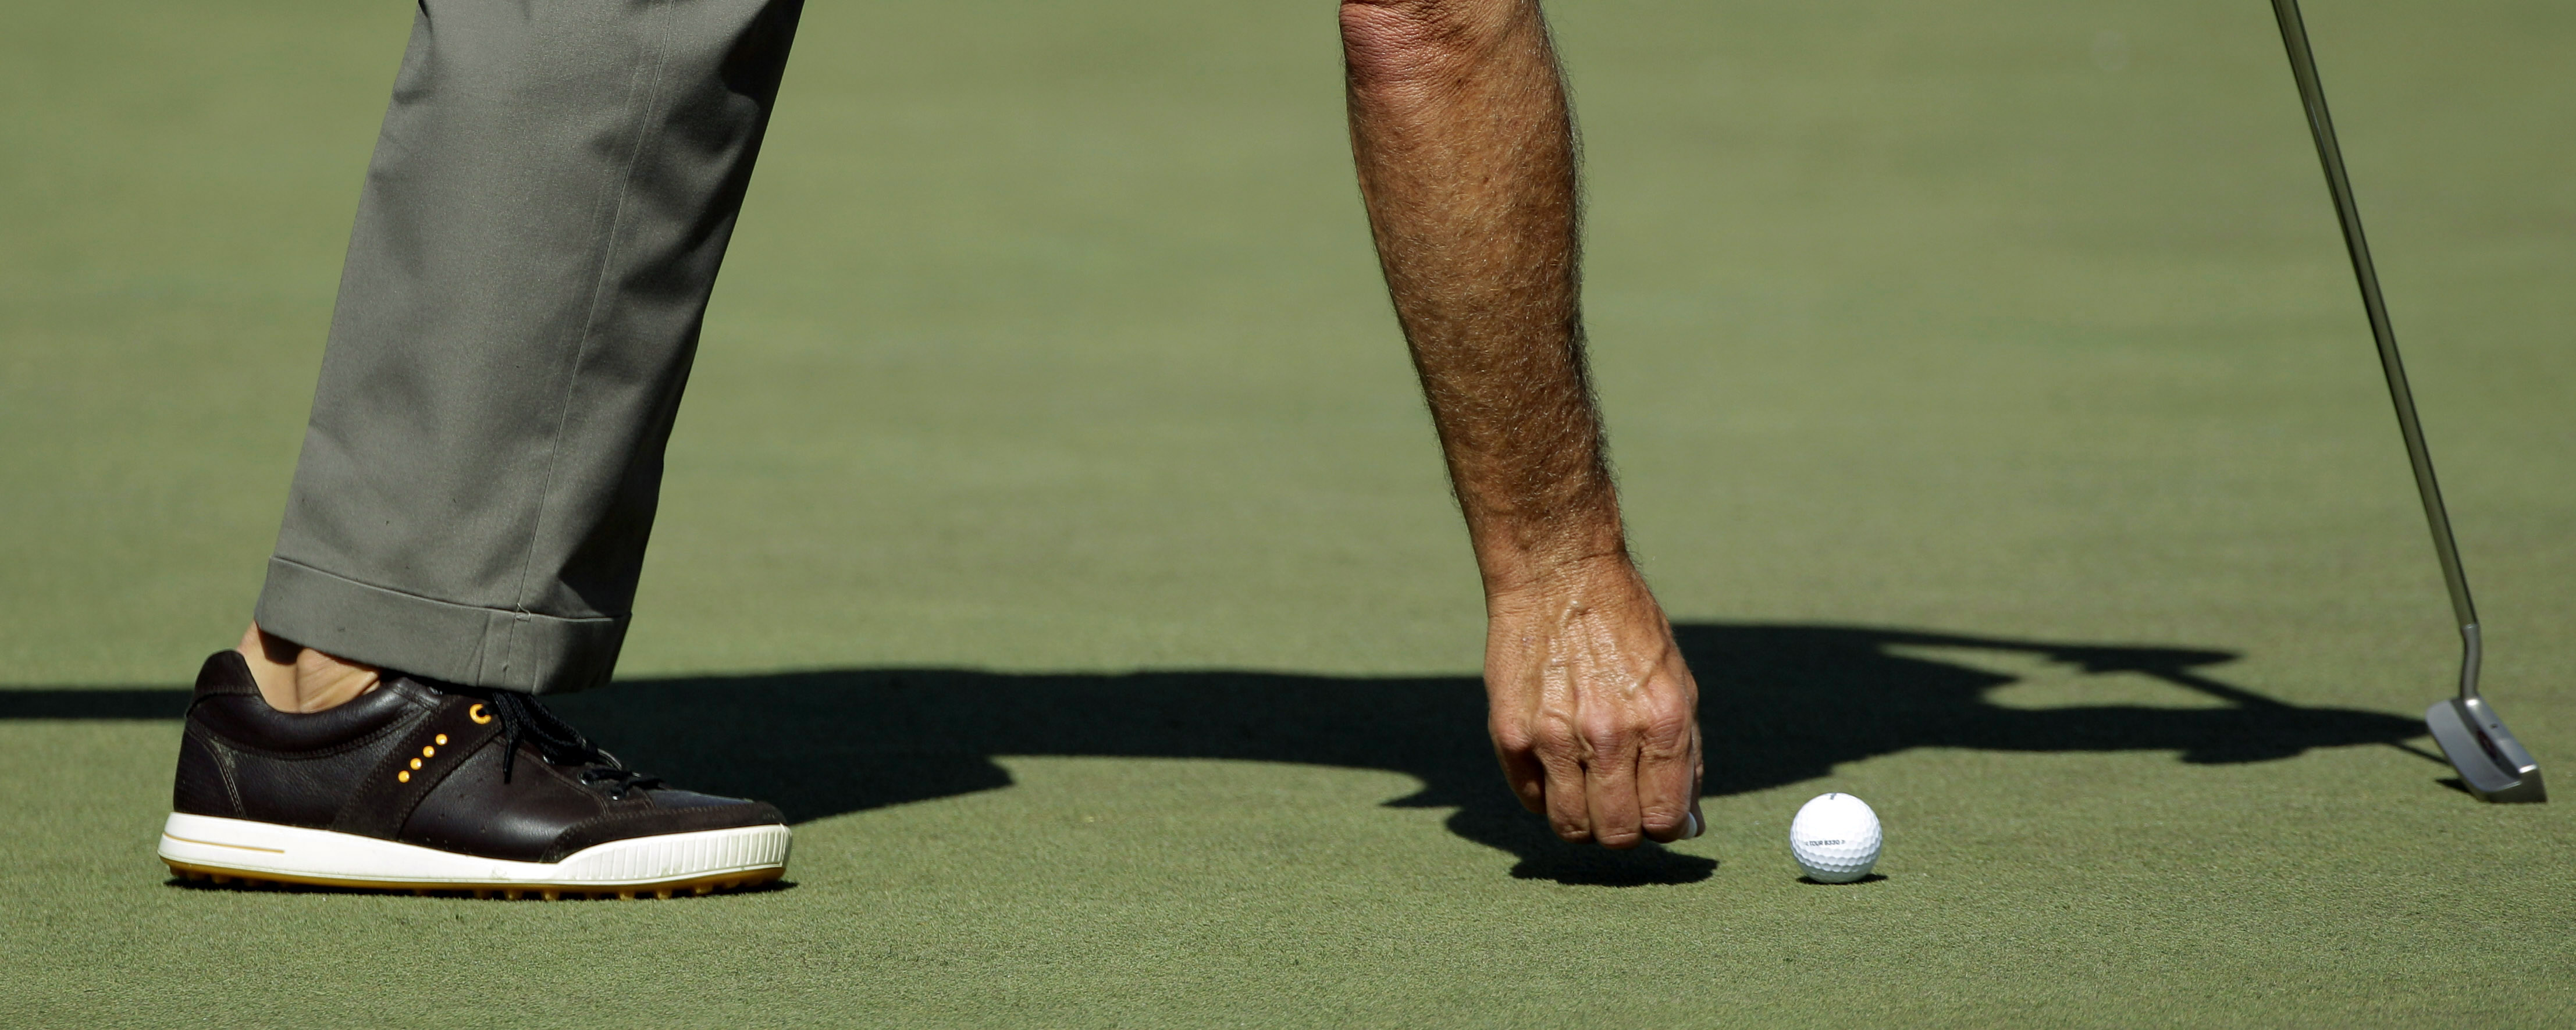 Fred Couples picks up debris behind his ball on the second green during a practice round at the Masters golf tournament in Augusta, Ga., Tuesday, April 6, 2010. The tournament begins Thursday, April, 8. (AP Photo/Rob Carr)